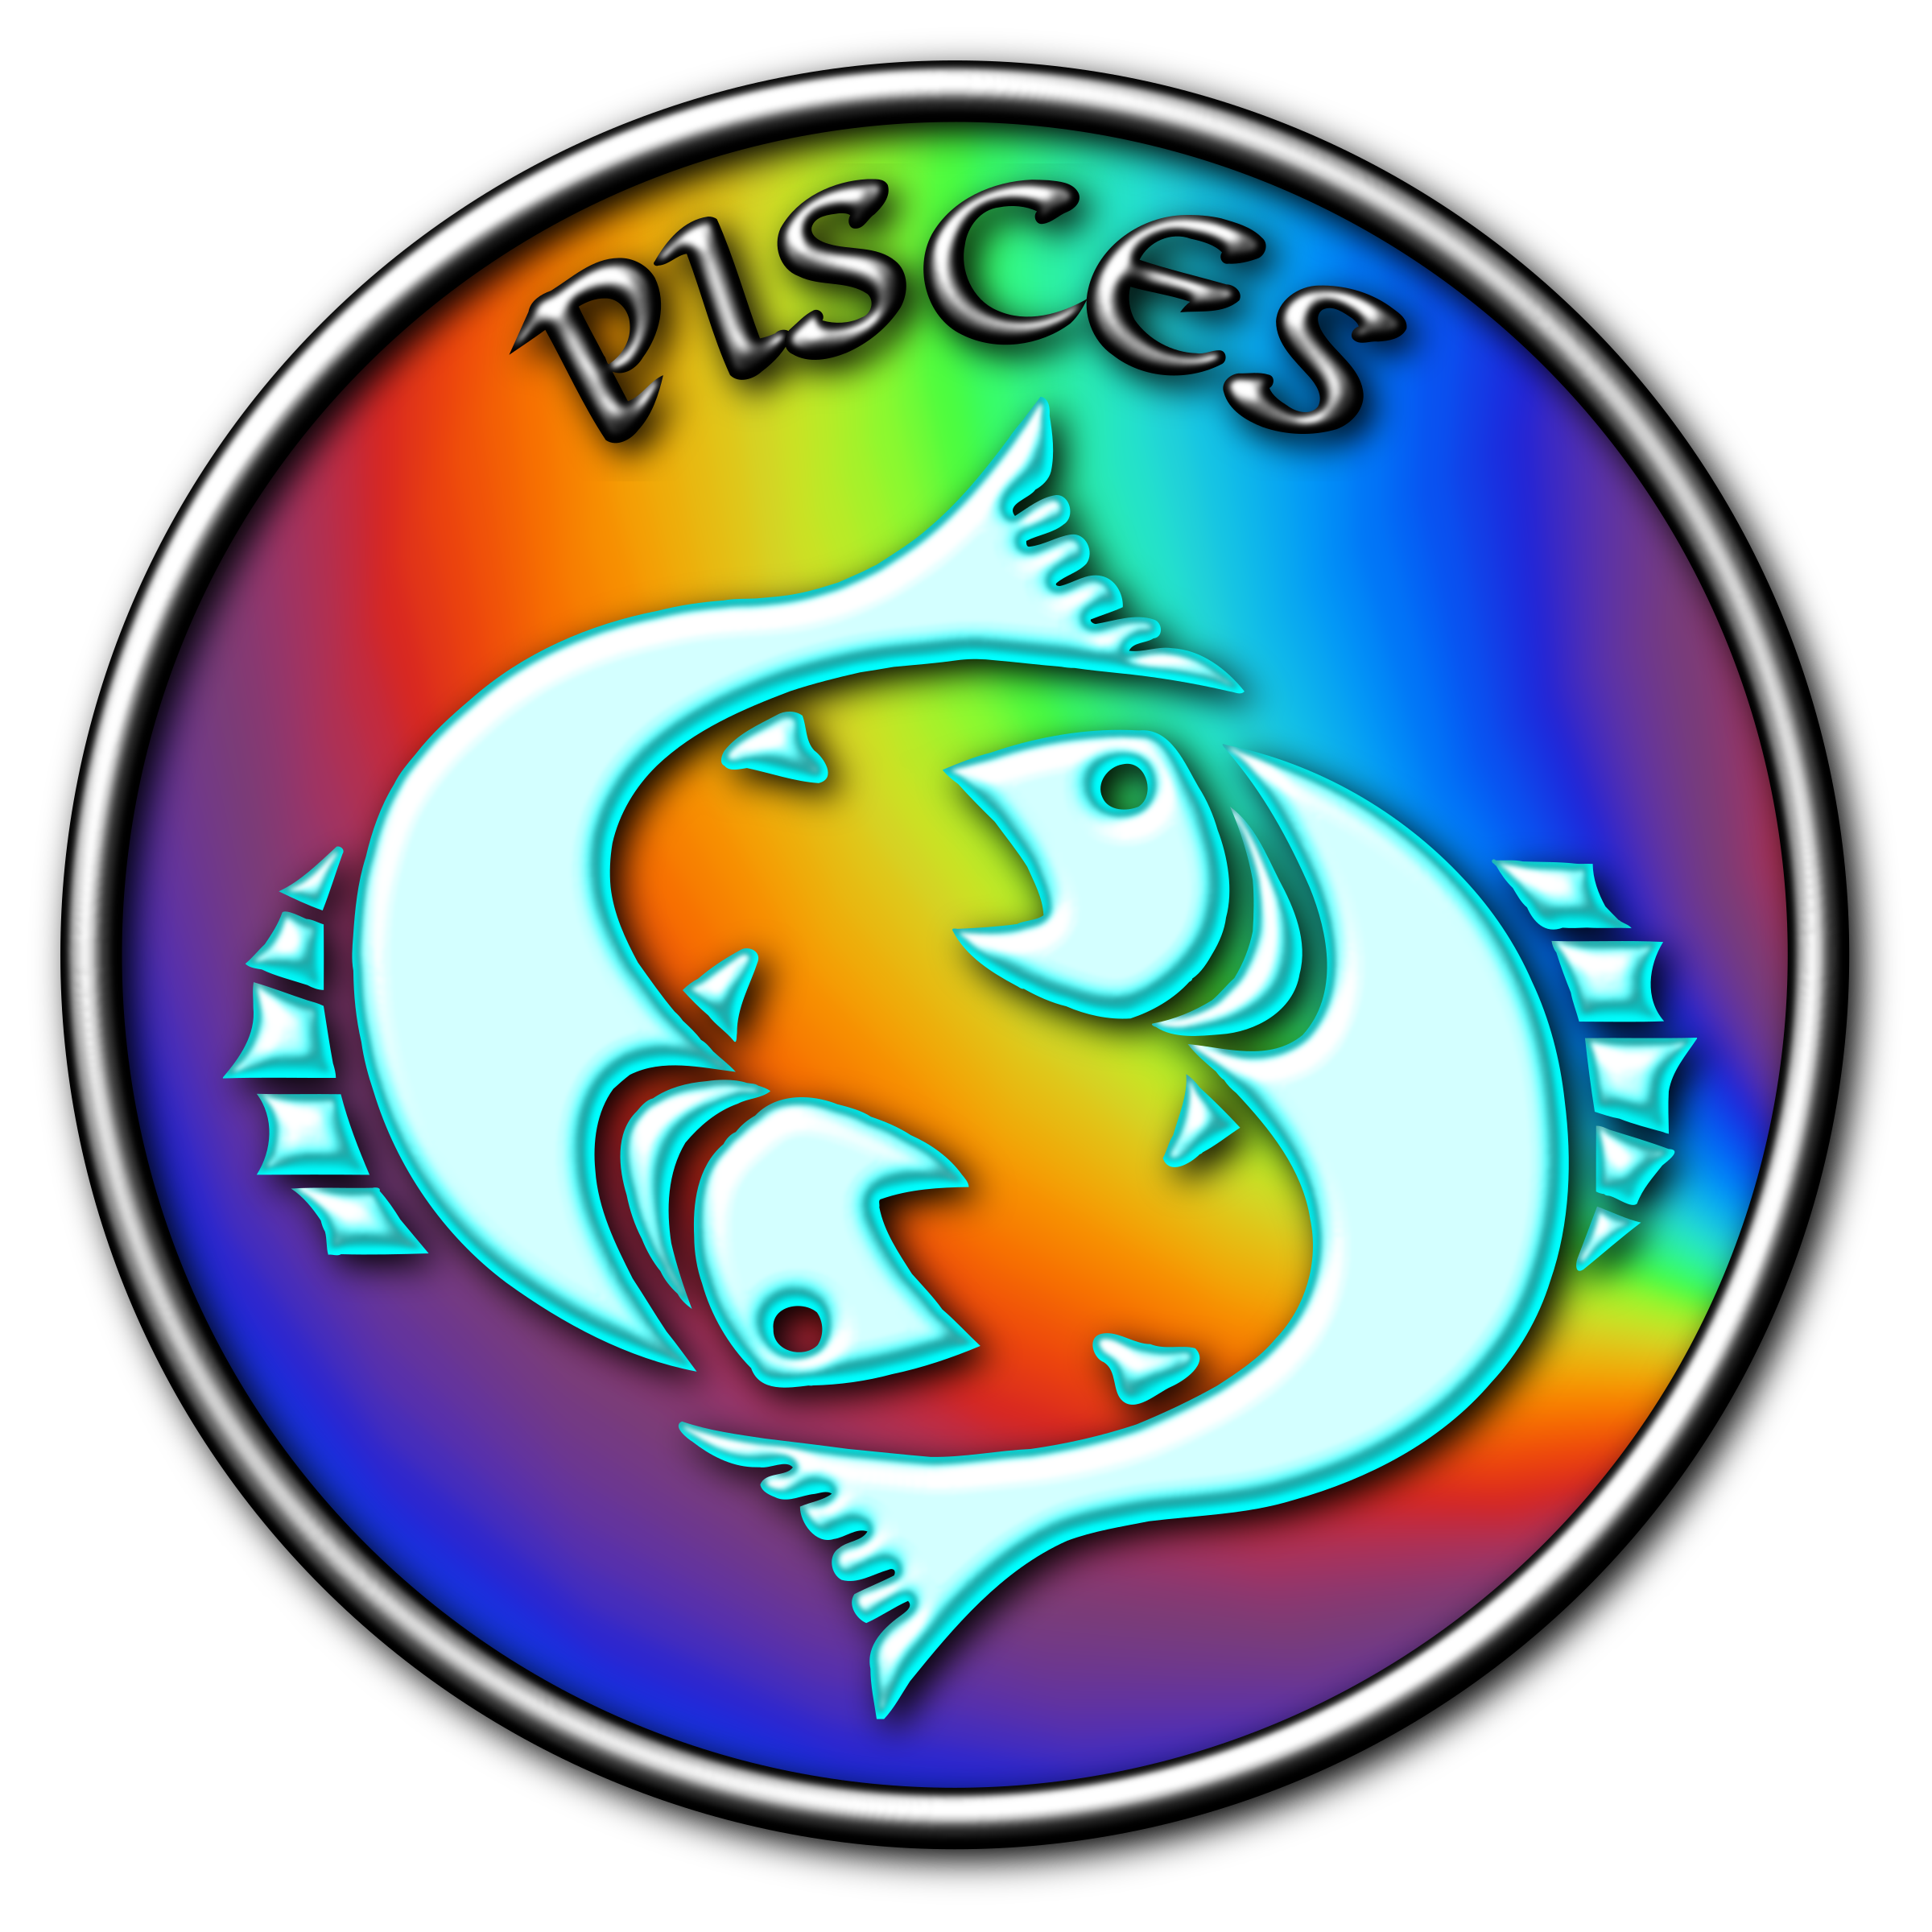 pisces by mross10